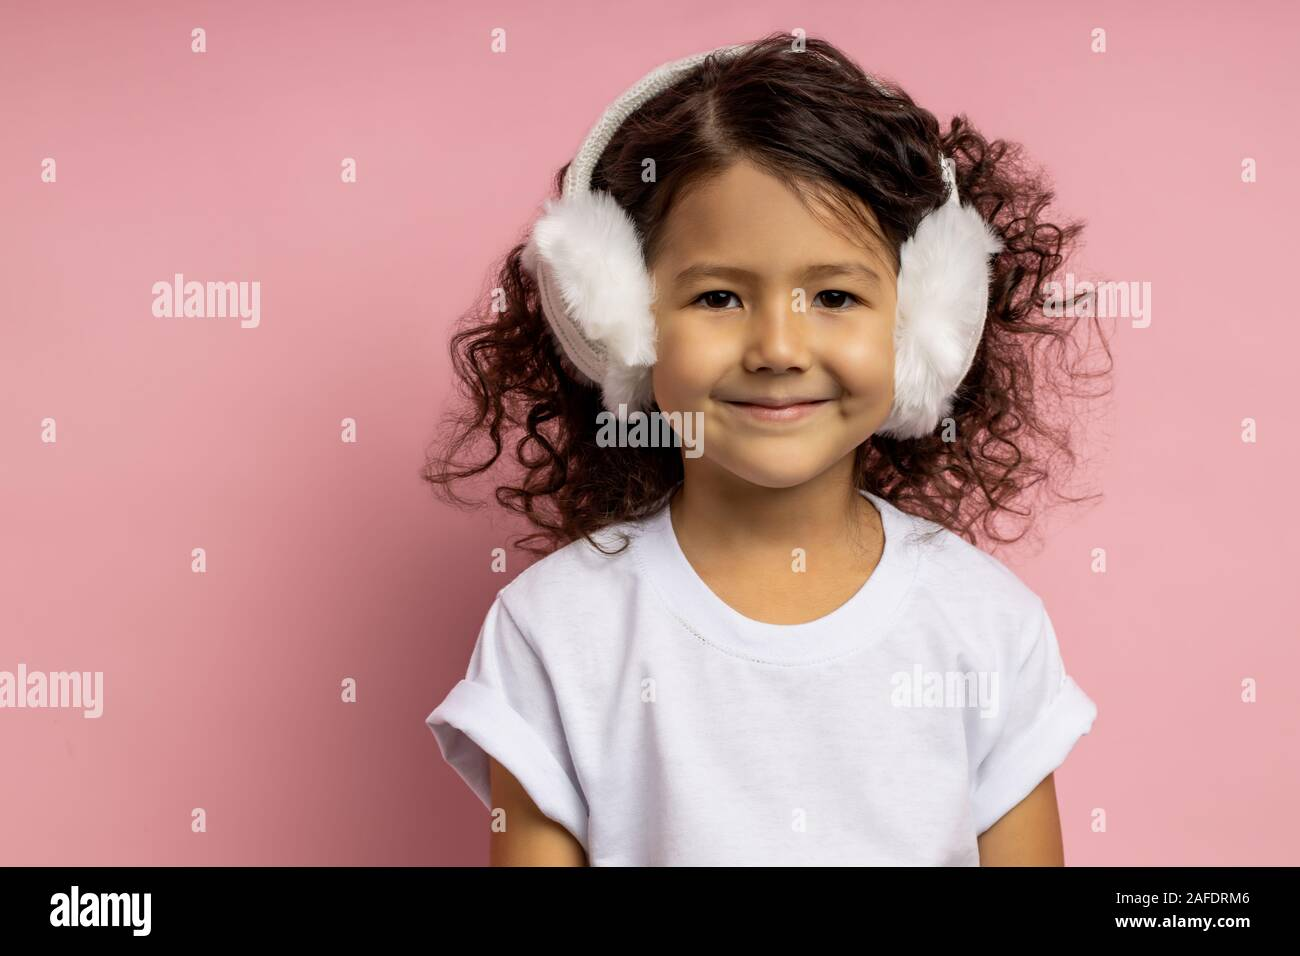 Close Up Studio Portrait Of Little Girl 5 Y O With Dark Curly